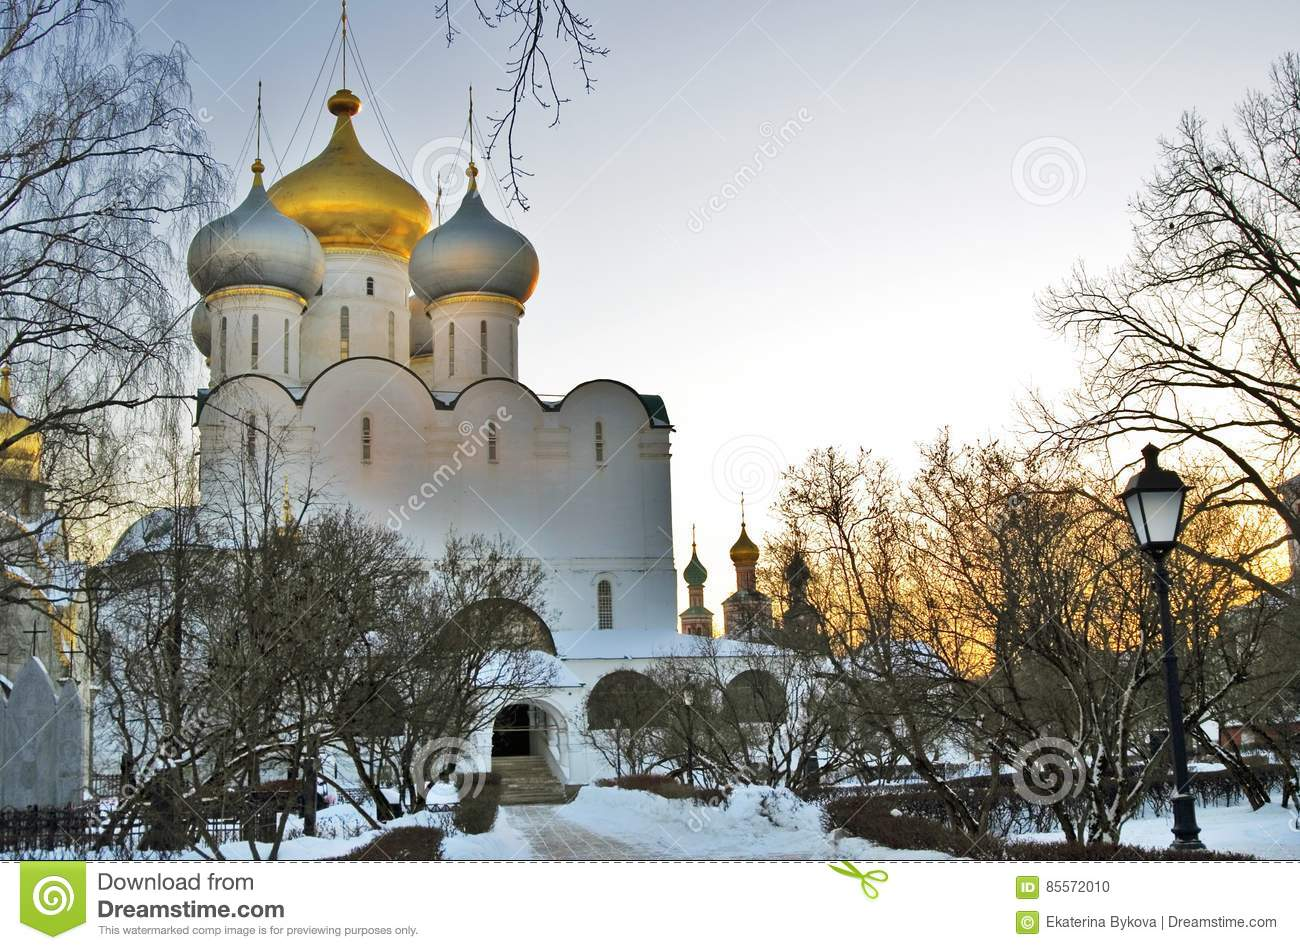 Download Architecture Of Novodevichy Convent In Moscow. Smolensk Icon Church Stock Photo - Image of eastern, cross: 85572010